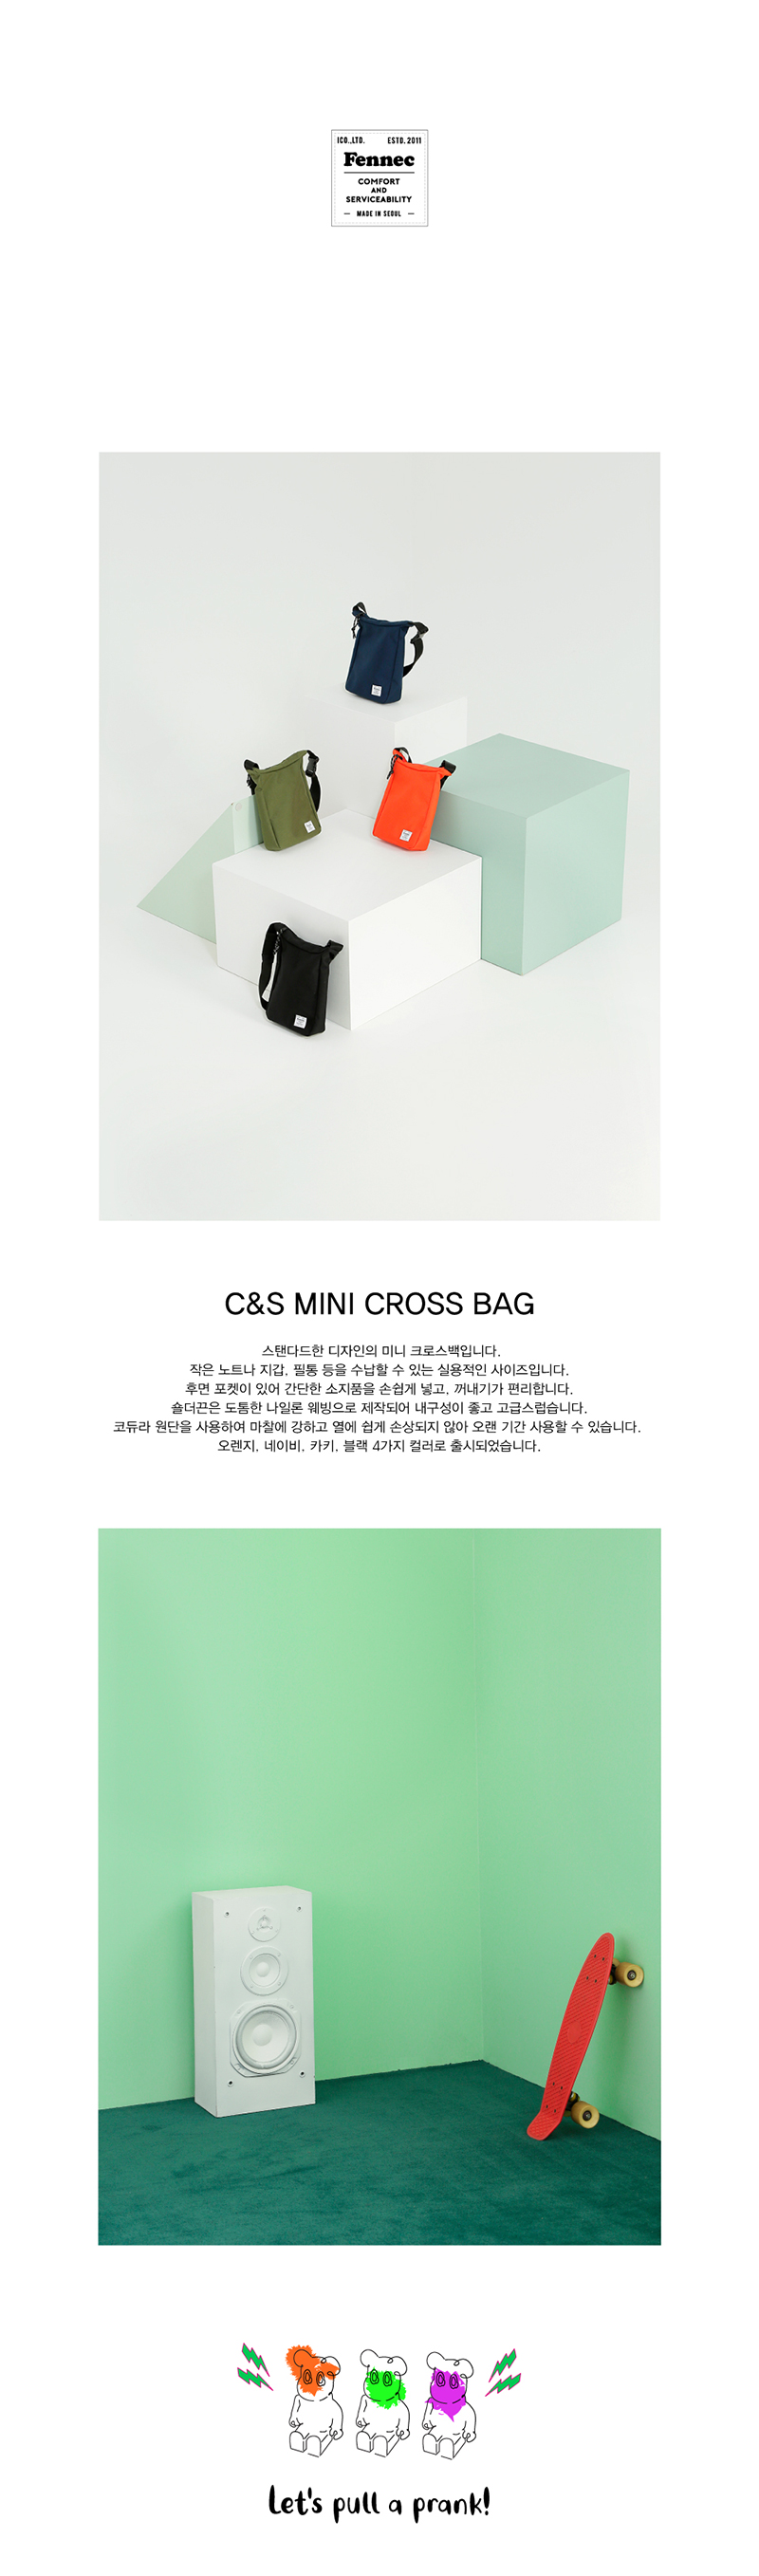 텐텐_MINI-CROSS-BAG_01.jpg